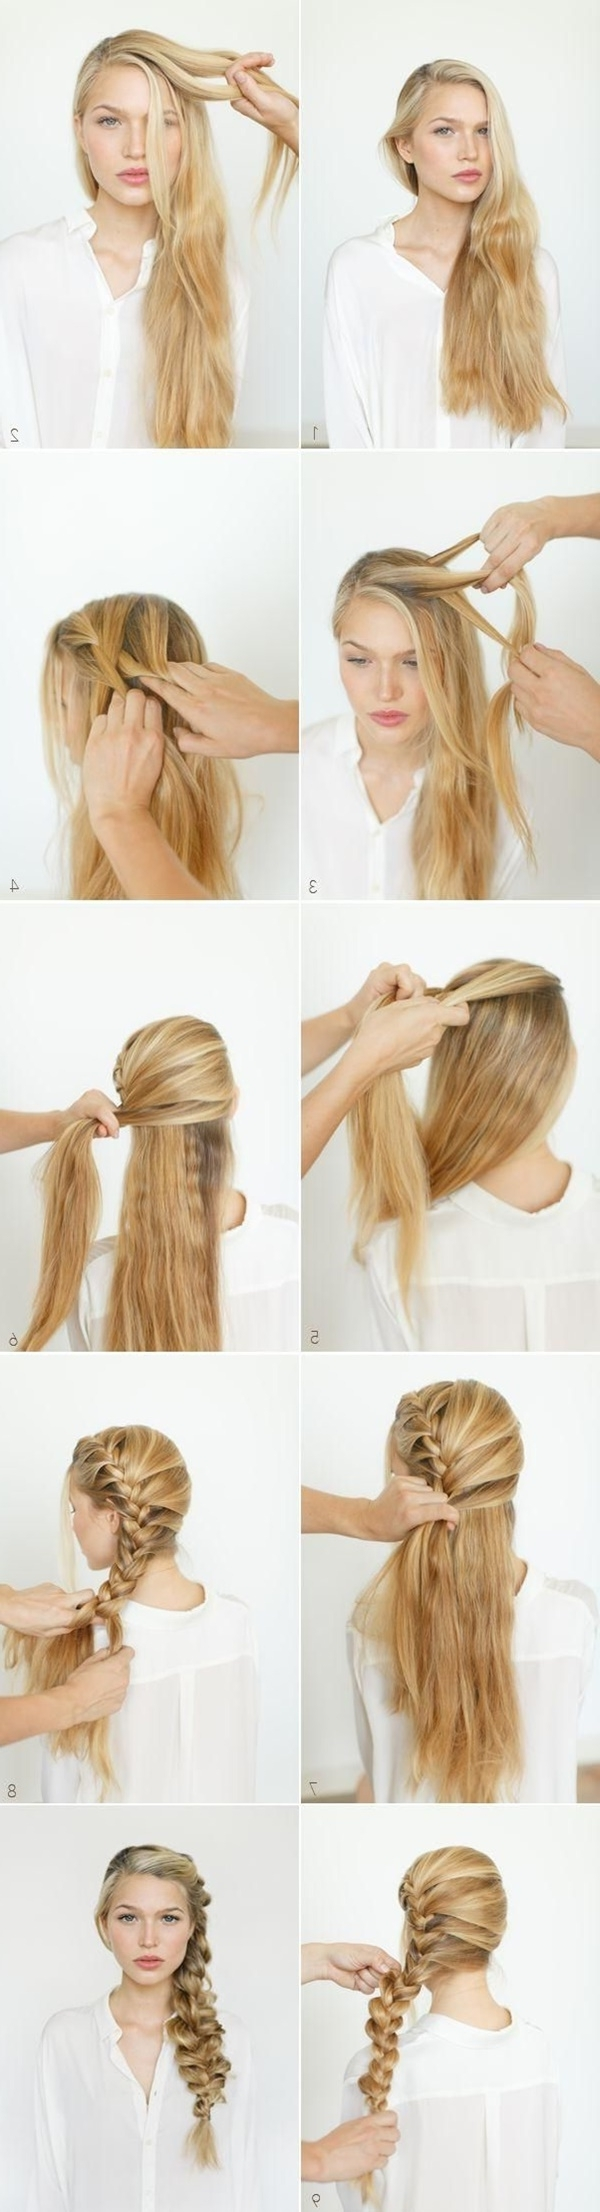 Newest Braided Hairstyles For Long Hair Inside 101 Romantic Braided Hairstyles For Long Hair And Medium Hair (View 10 of 15)